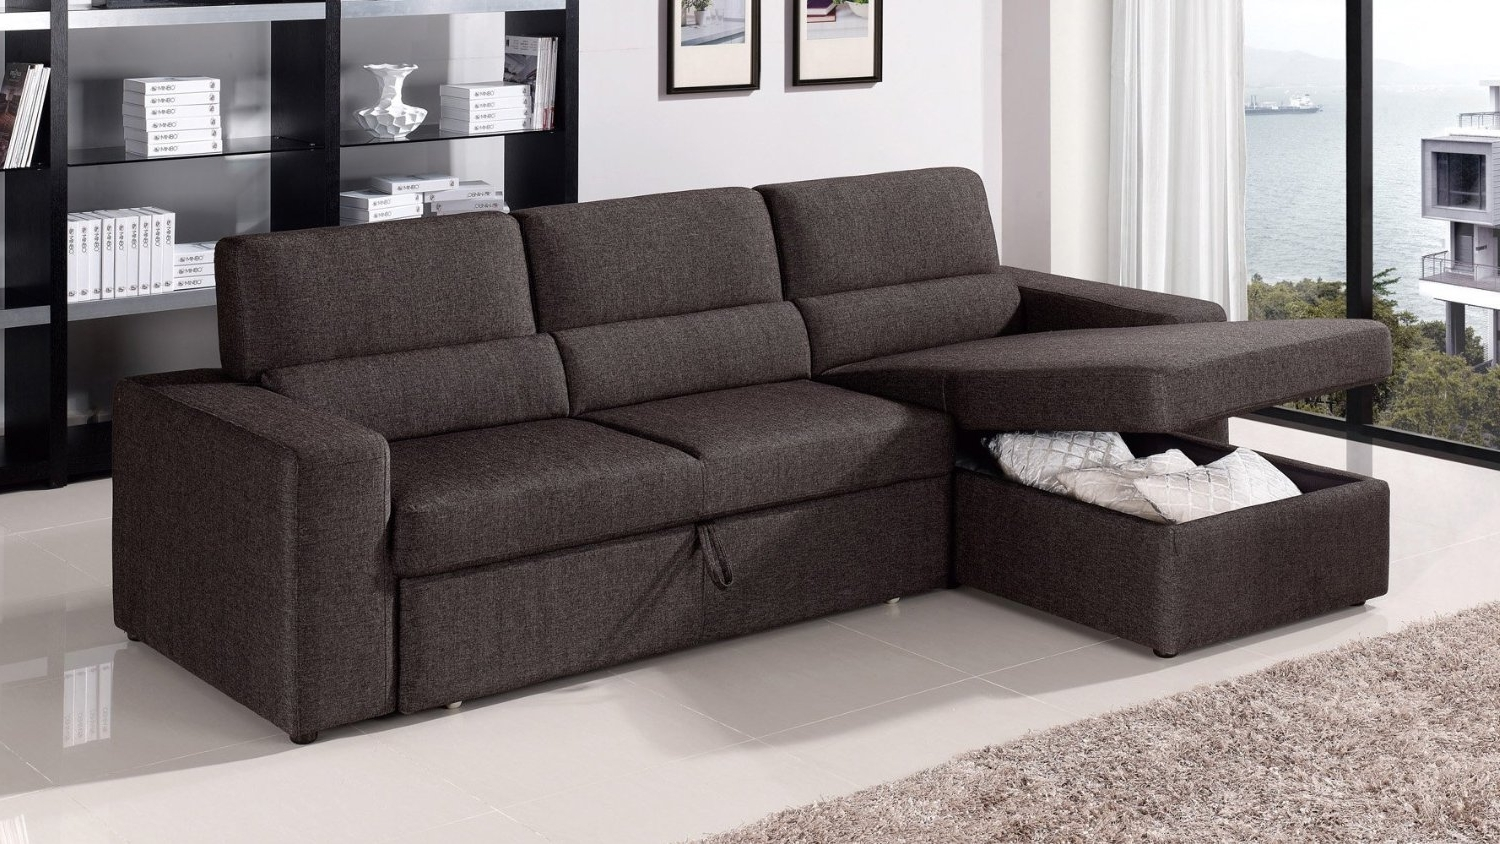 Trendy Sectional Sofas With Sleeper Inside Black Sectional Sofa Sleeper — Fabrizio Design : How To Make (View 16 of 20)